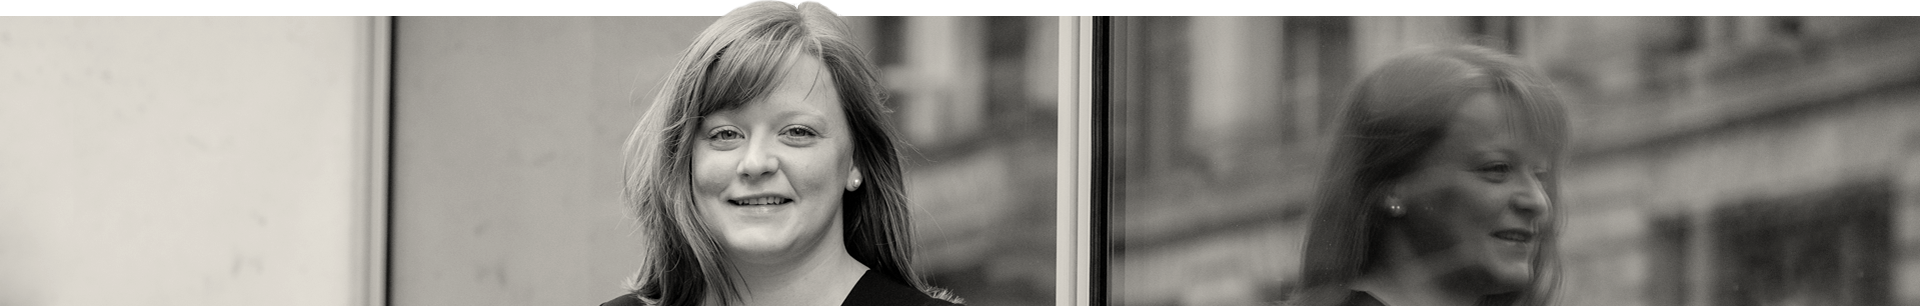 Jillian Merchant | Thompsons Solicitors Scotland